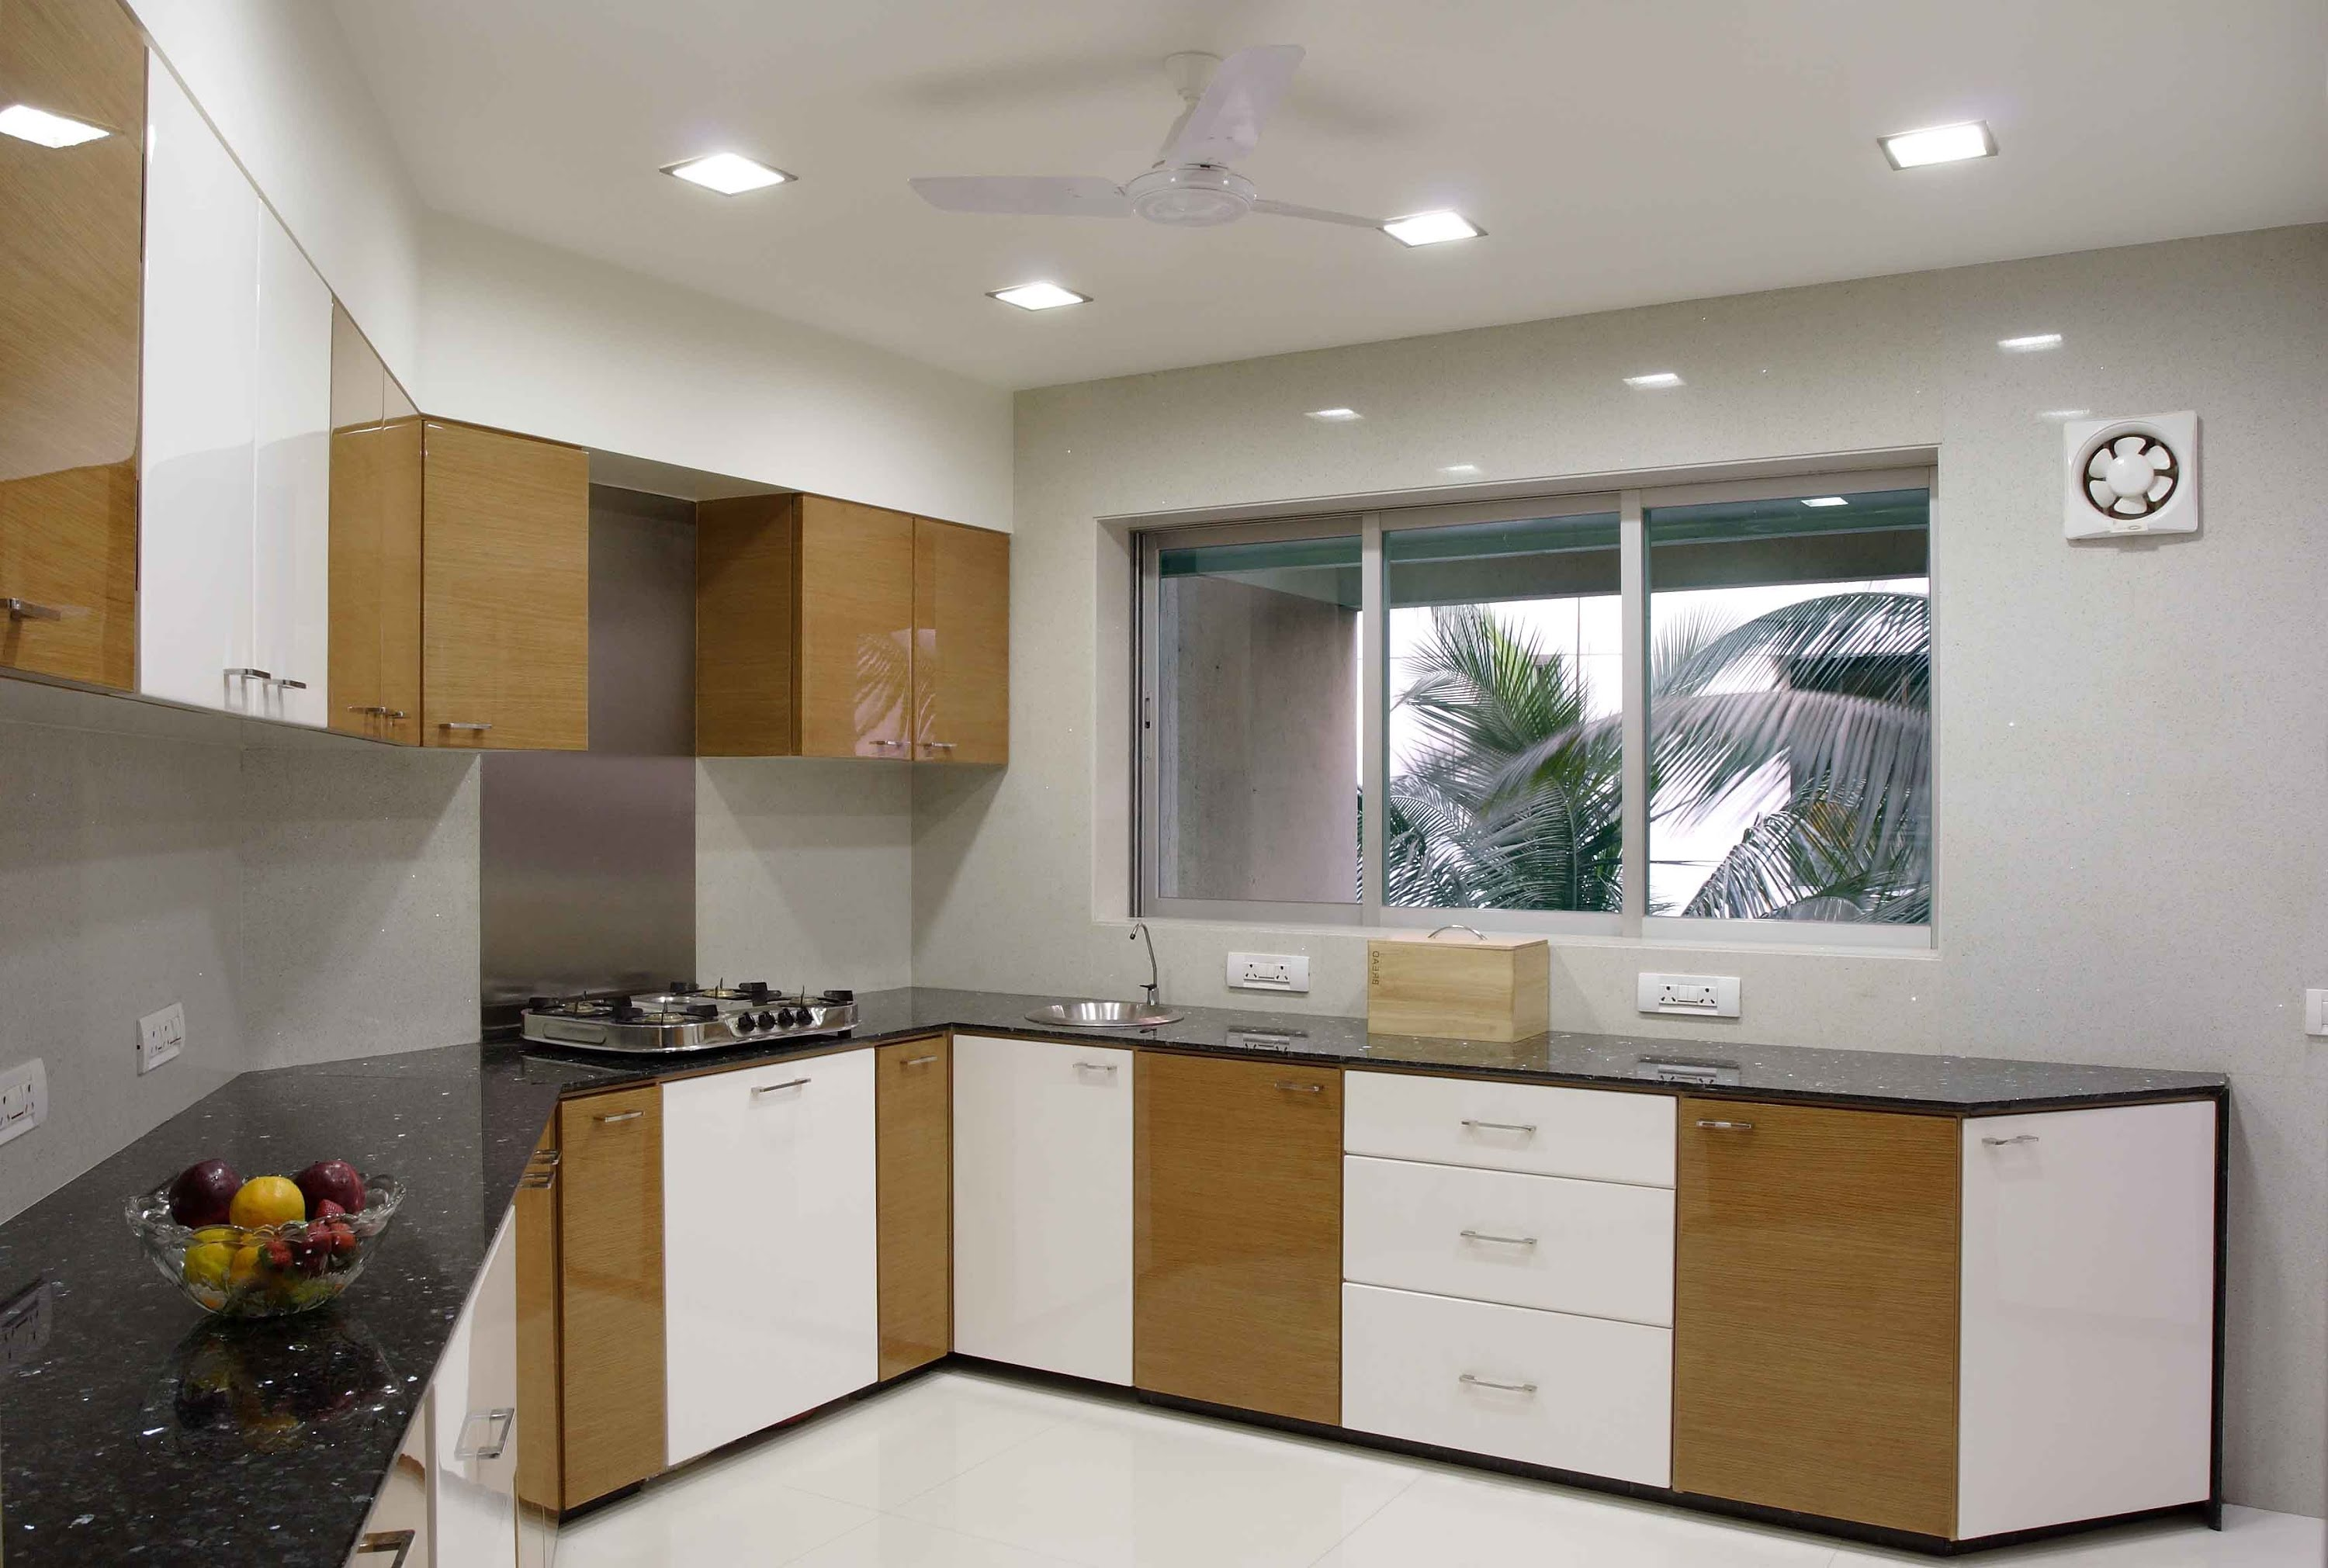 Compact Modular Kitchen Designs For Small Kitchens Small Kitchen Designs - YouTube modular kitchen designs for small kitchens